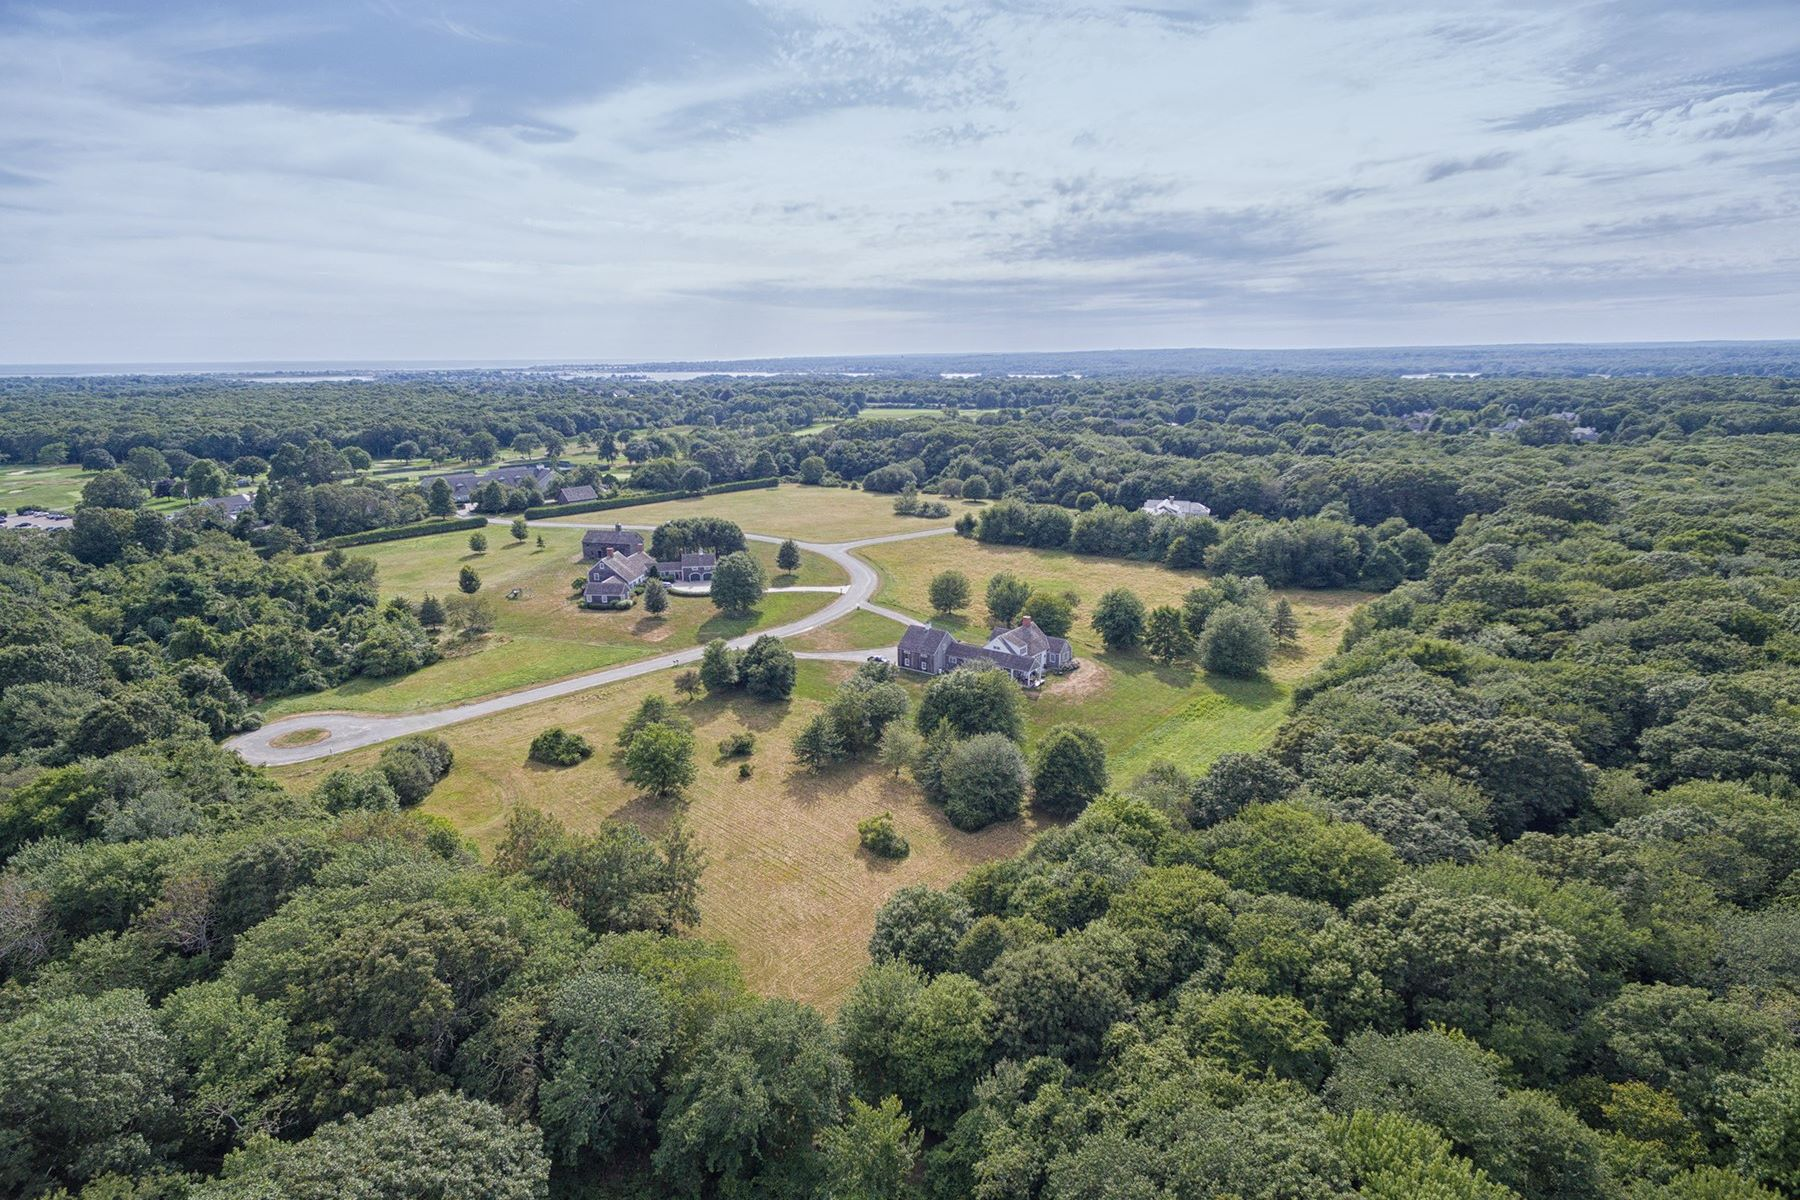 Land for Sale at 0 Clubhouse Drive, Narragansett, RI Narragansett, Rhode Island 02882 United States